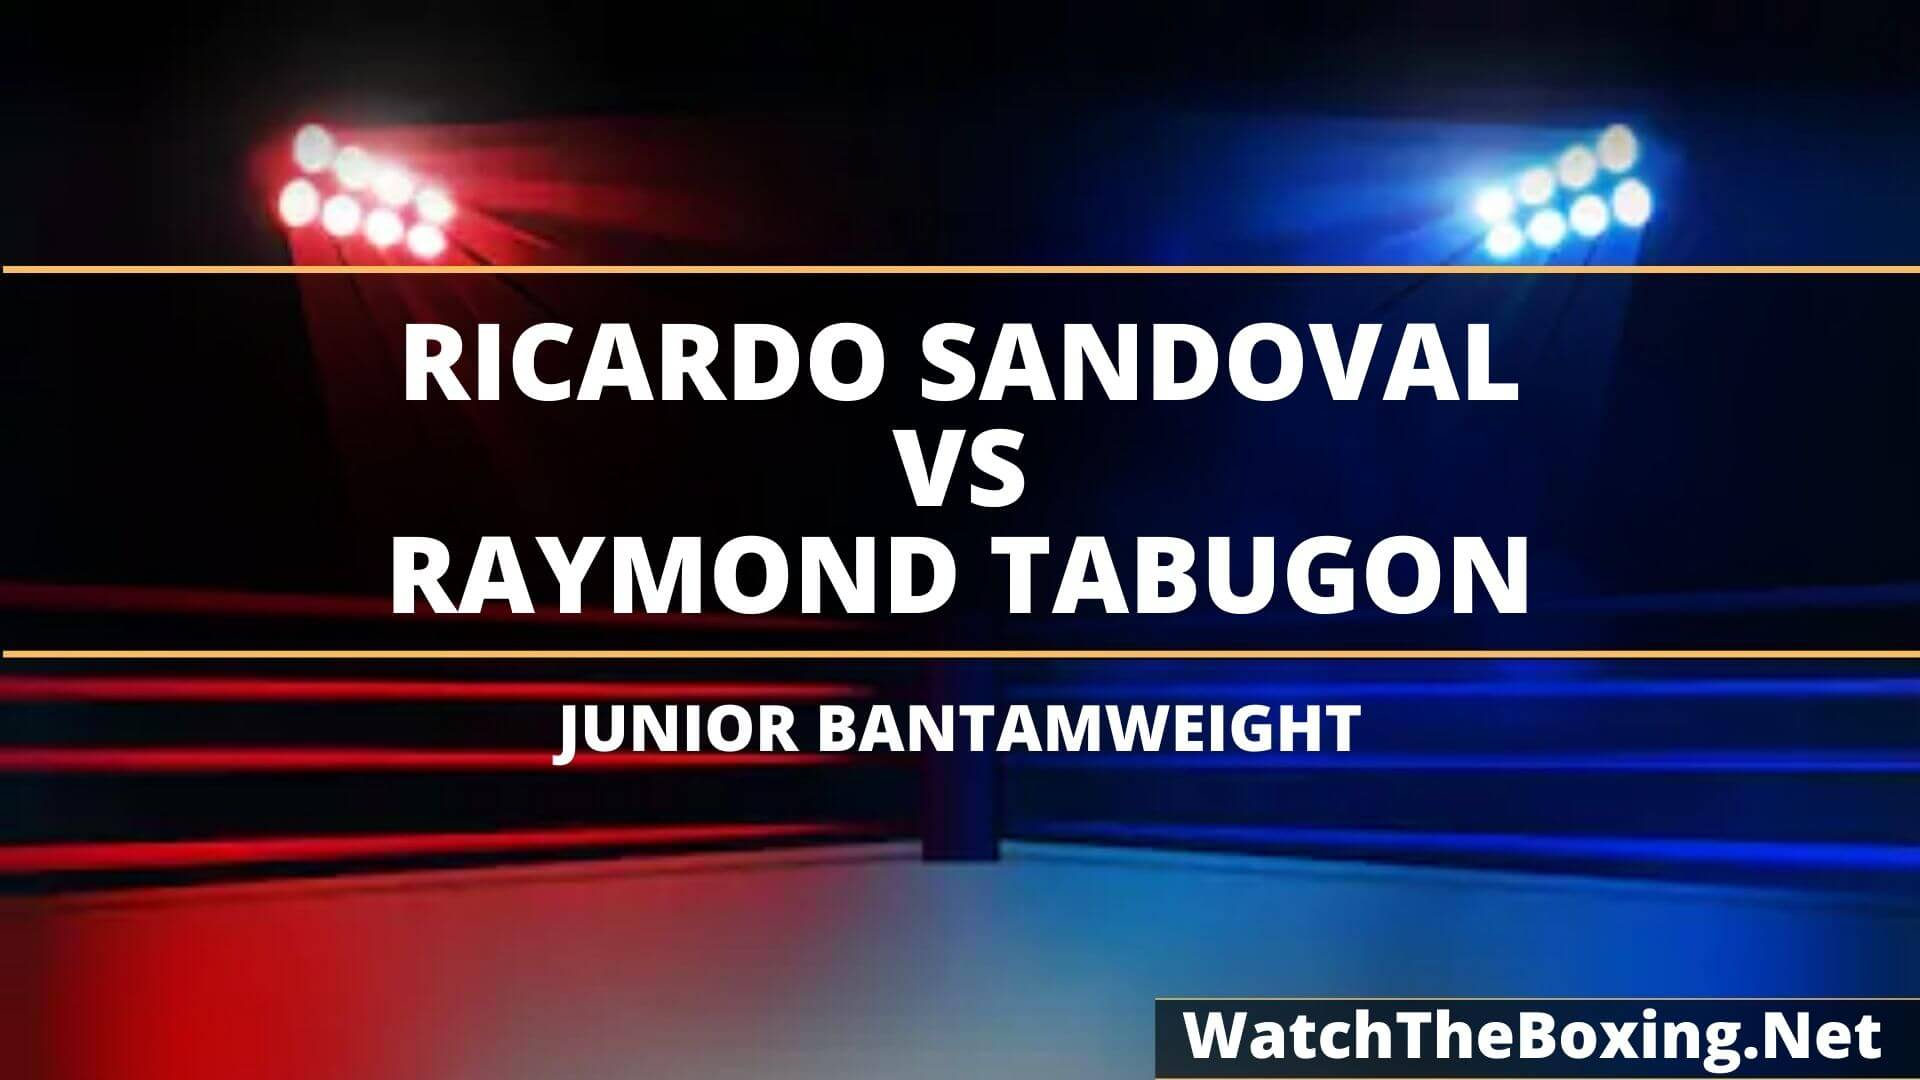 Ricardo Sandoval Vs Raymond Tabugon Highlights 2020